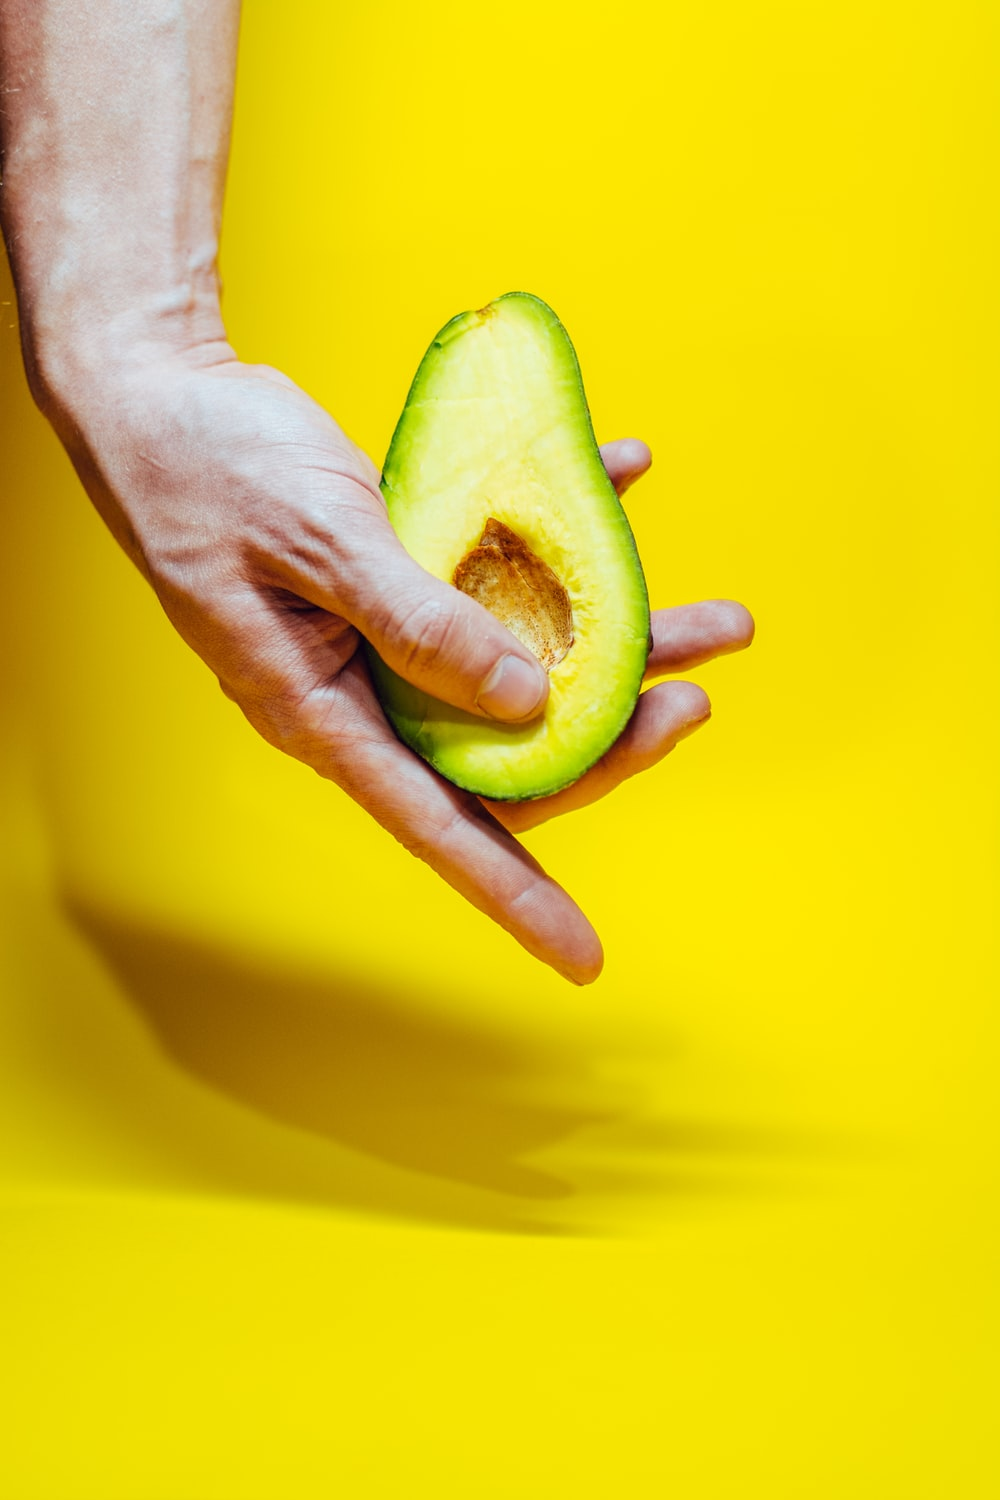 person holding green and yellow fruit